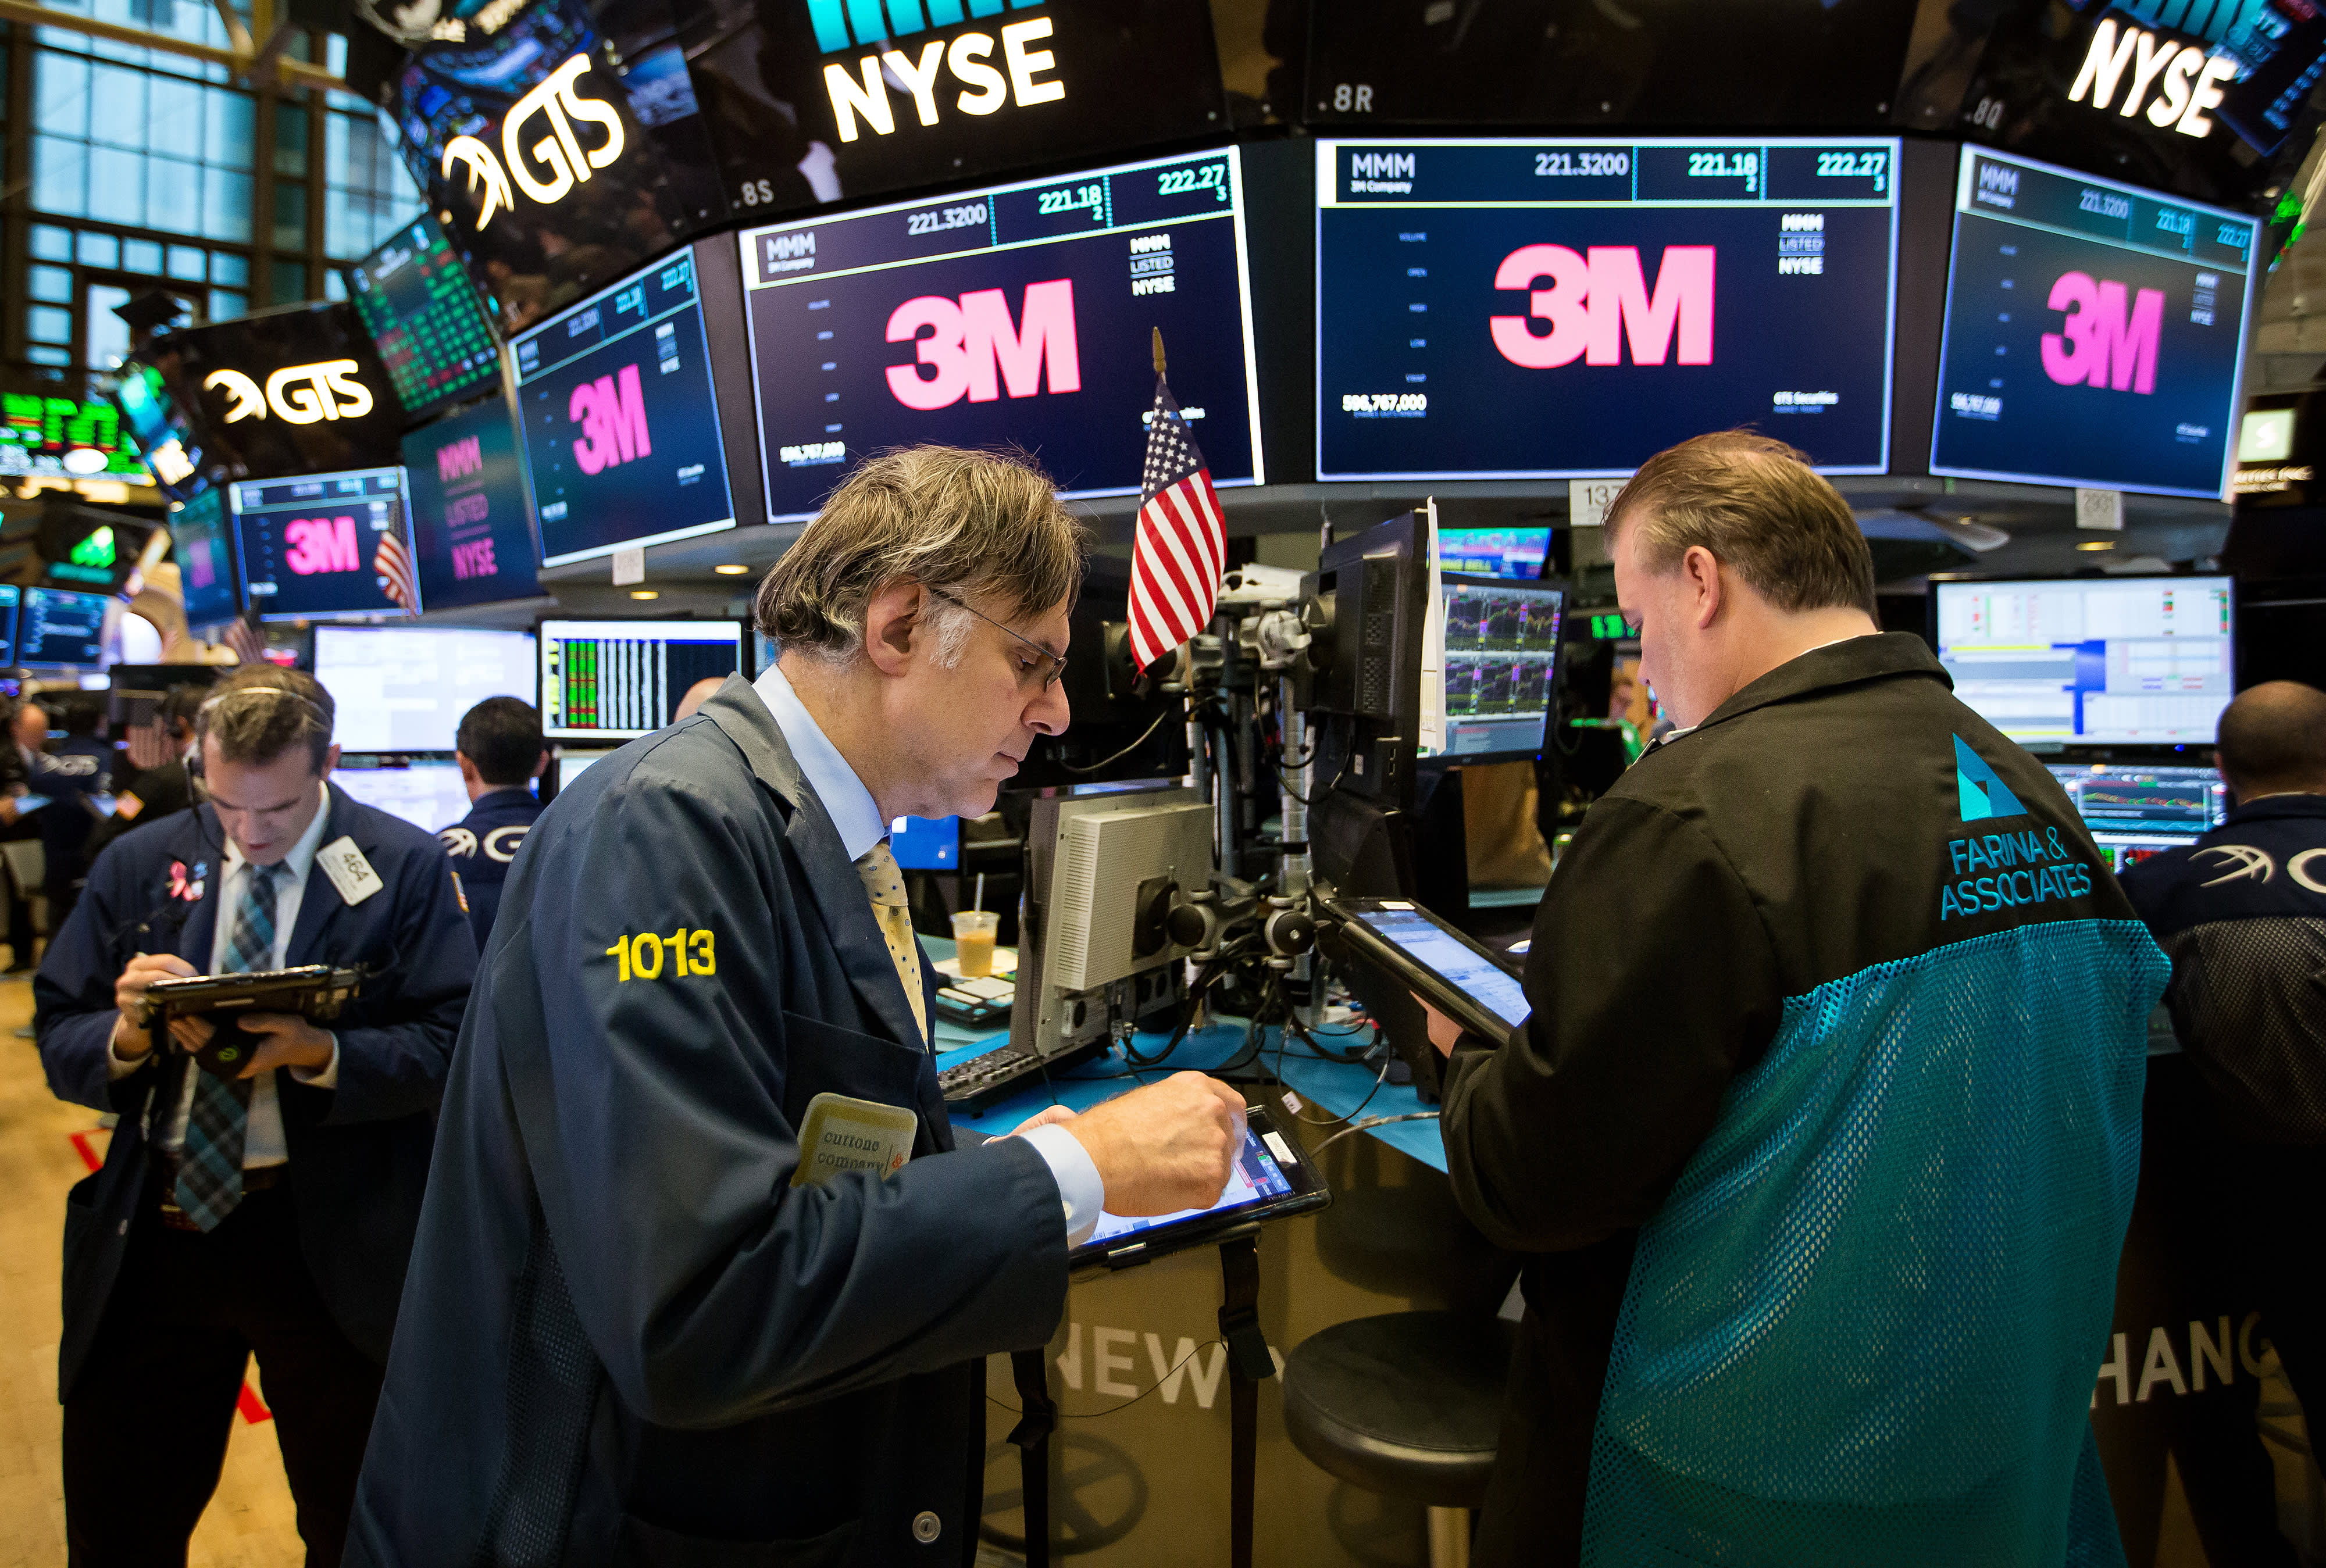 GP: 3M Trading On The Floor Of The NYSE As U.S. Stocks Mixed At Start Of Big Earnings Week